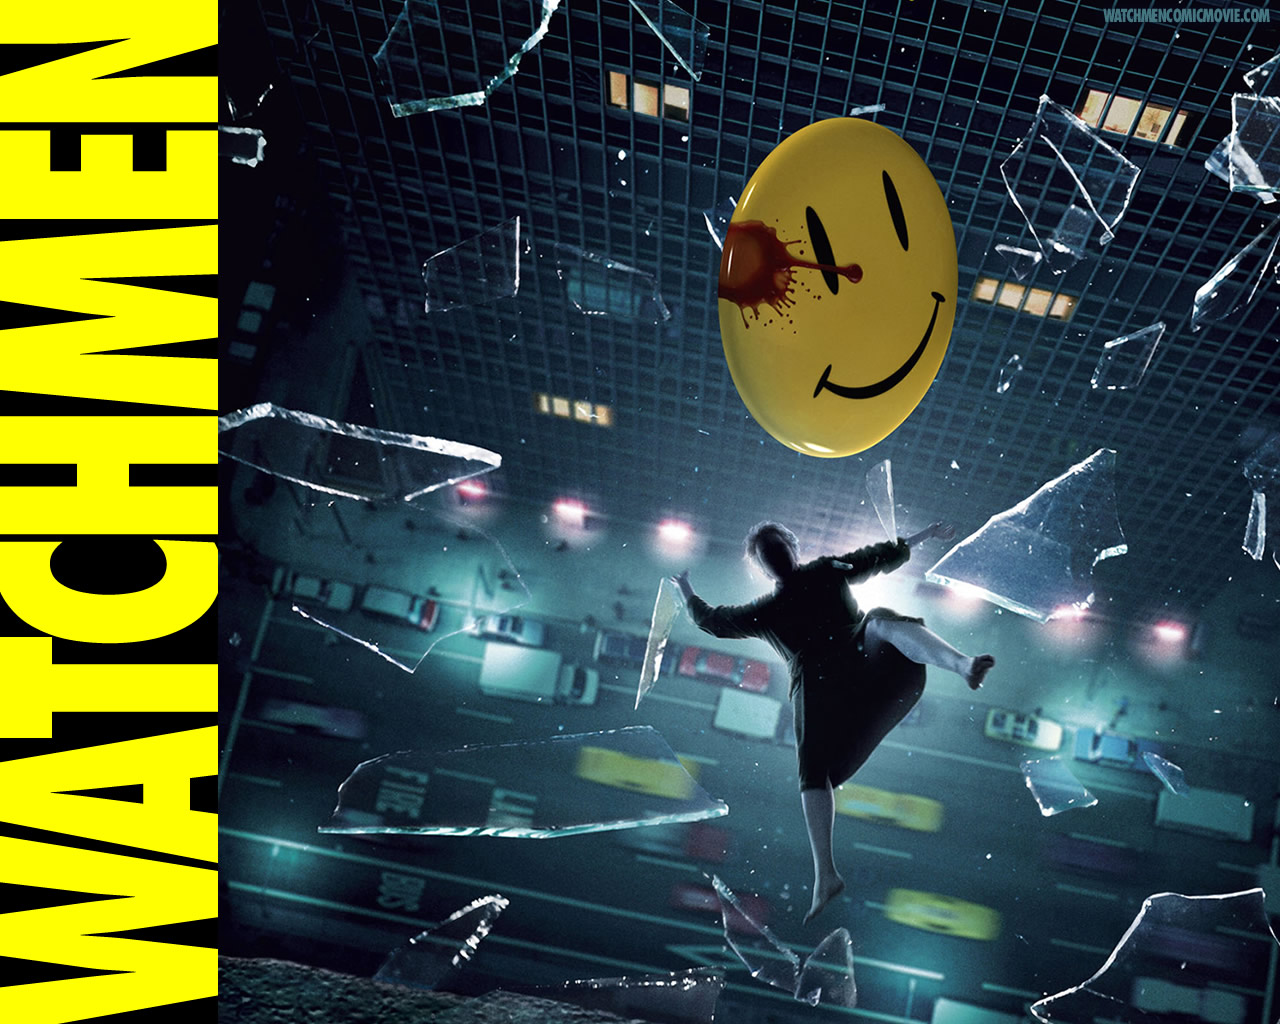 Watchmen Wallpaper 3029